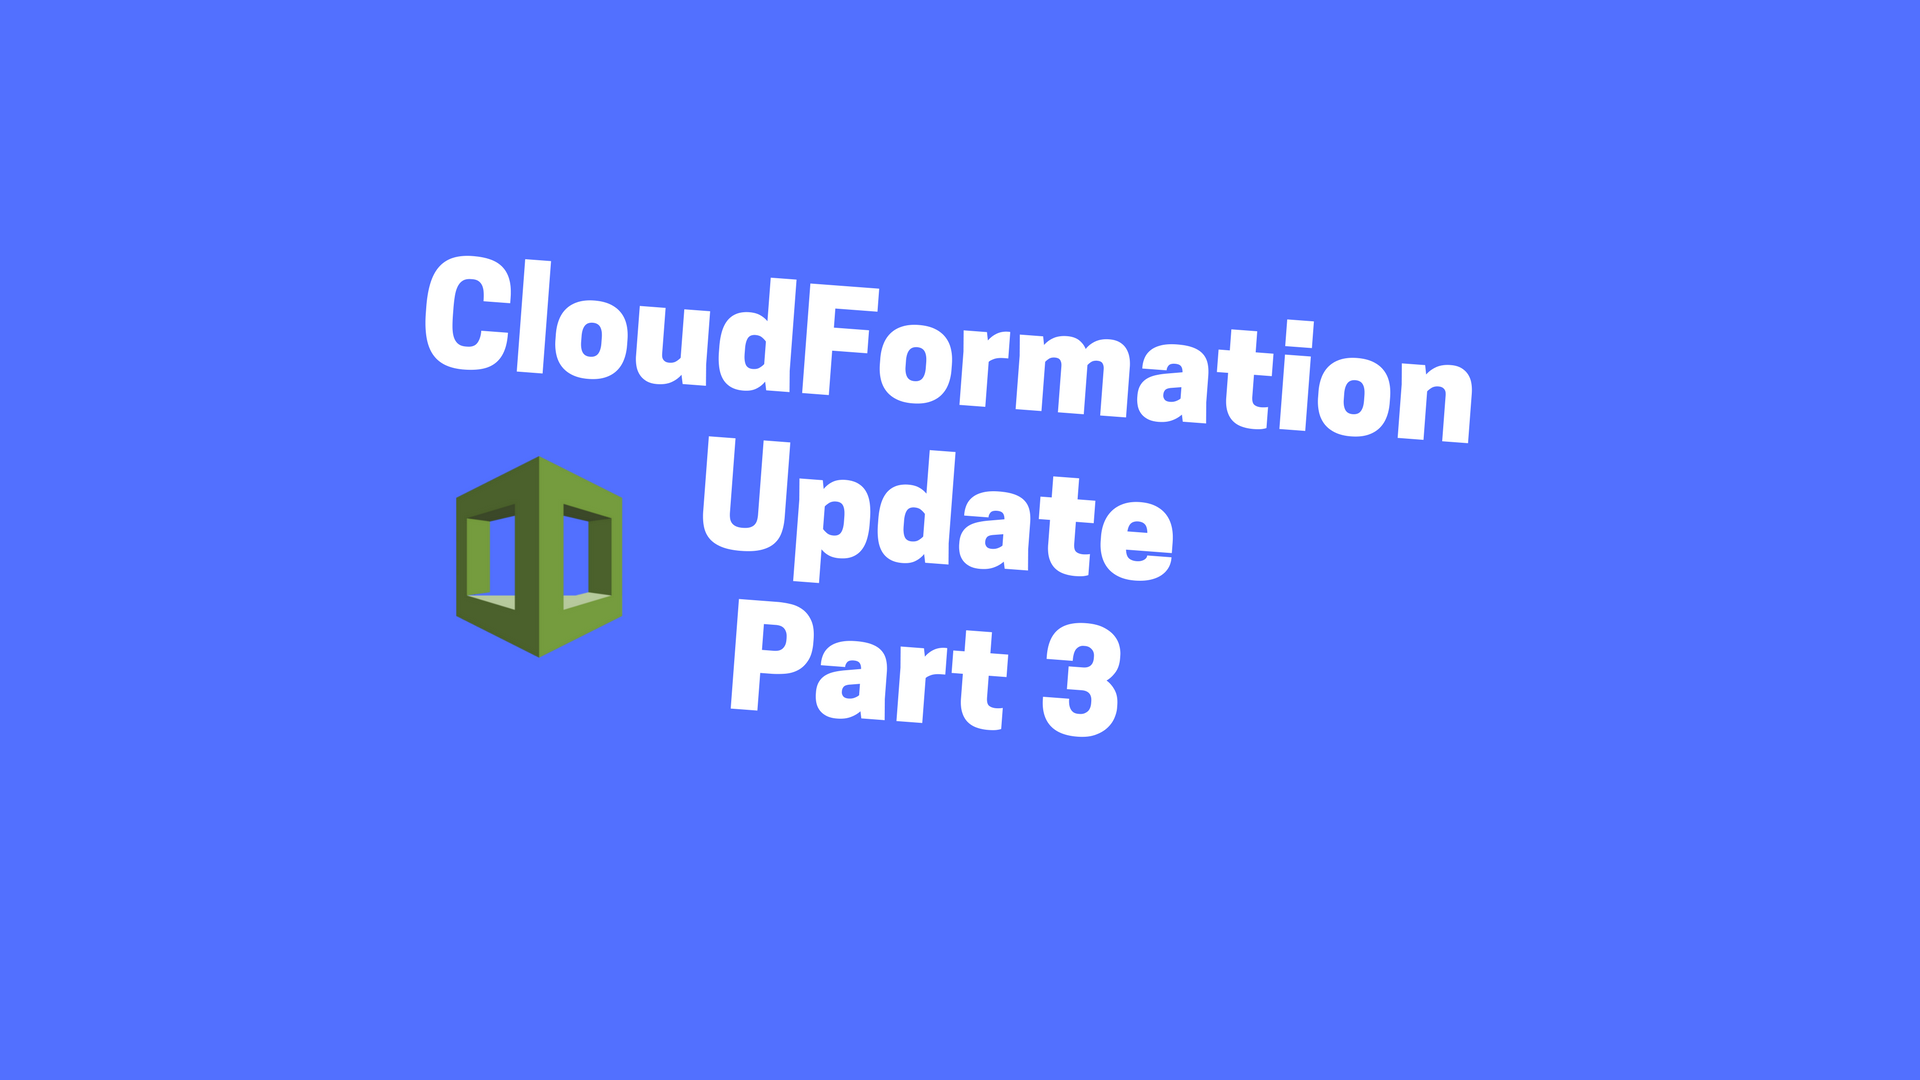 A Simple Introduction to AWS CloudFormation Part 3: Updating